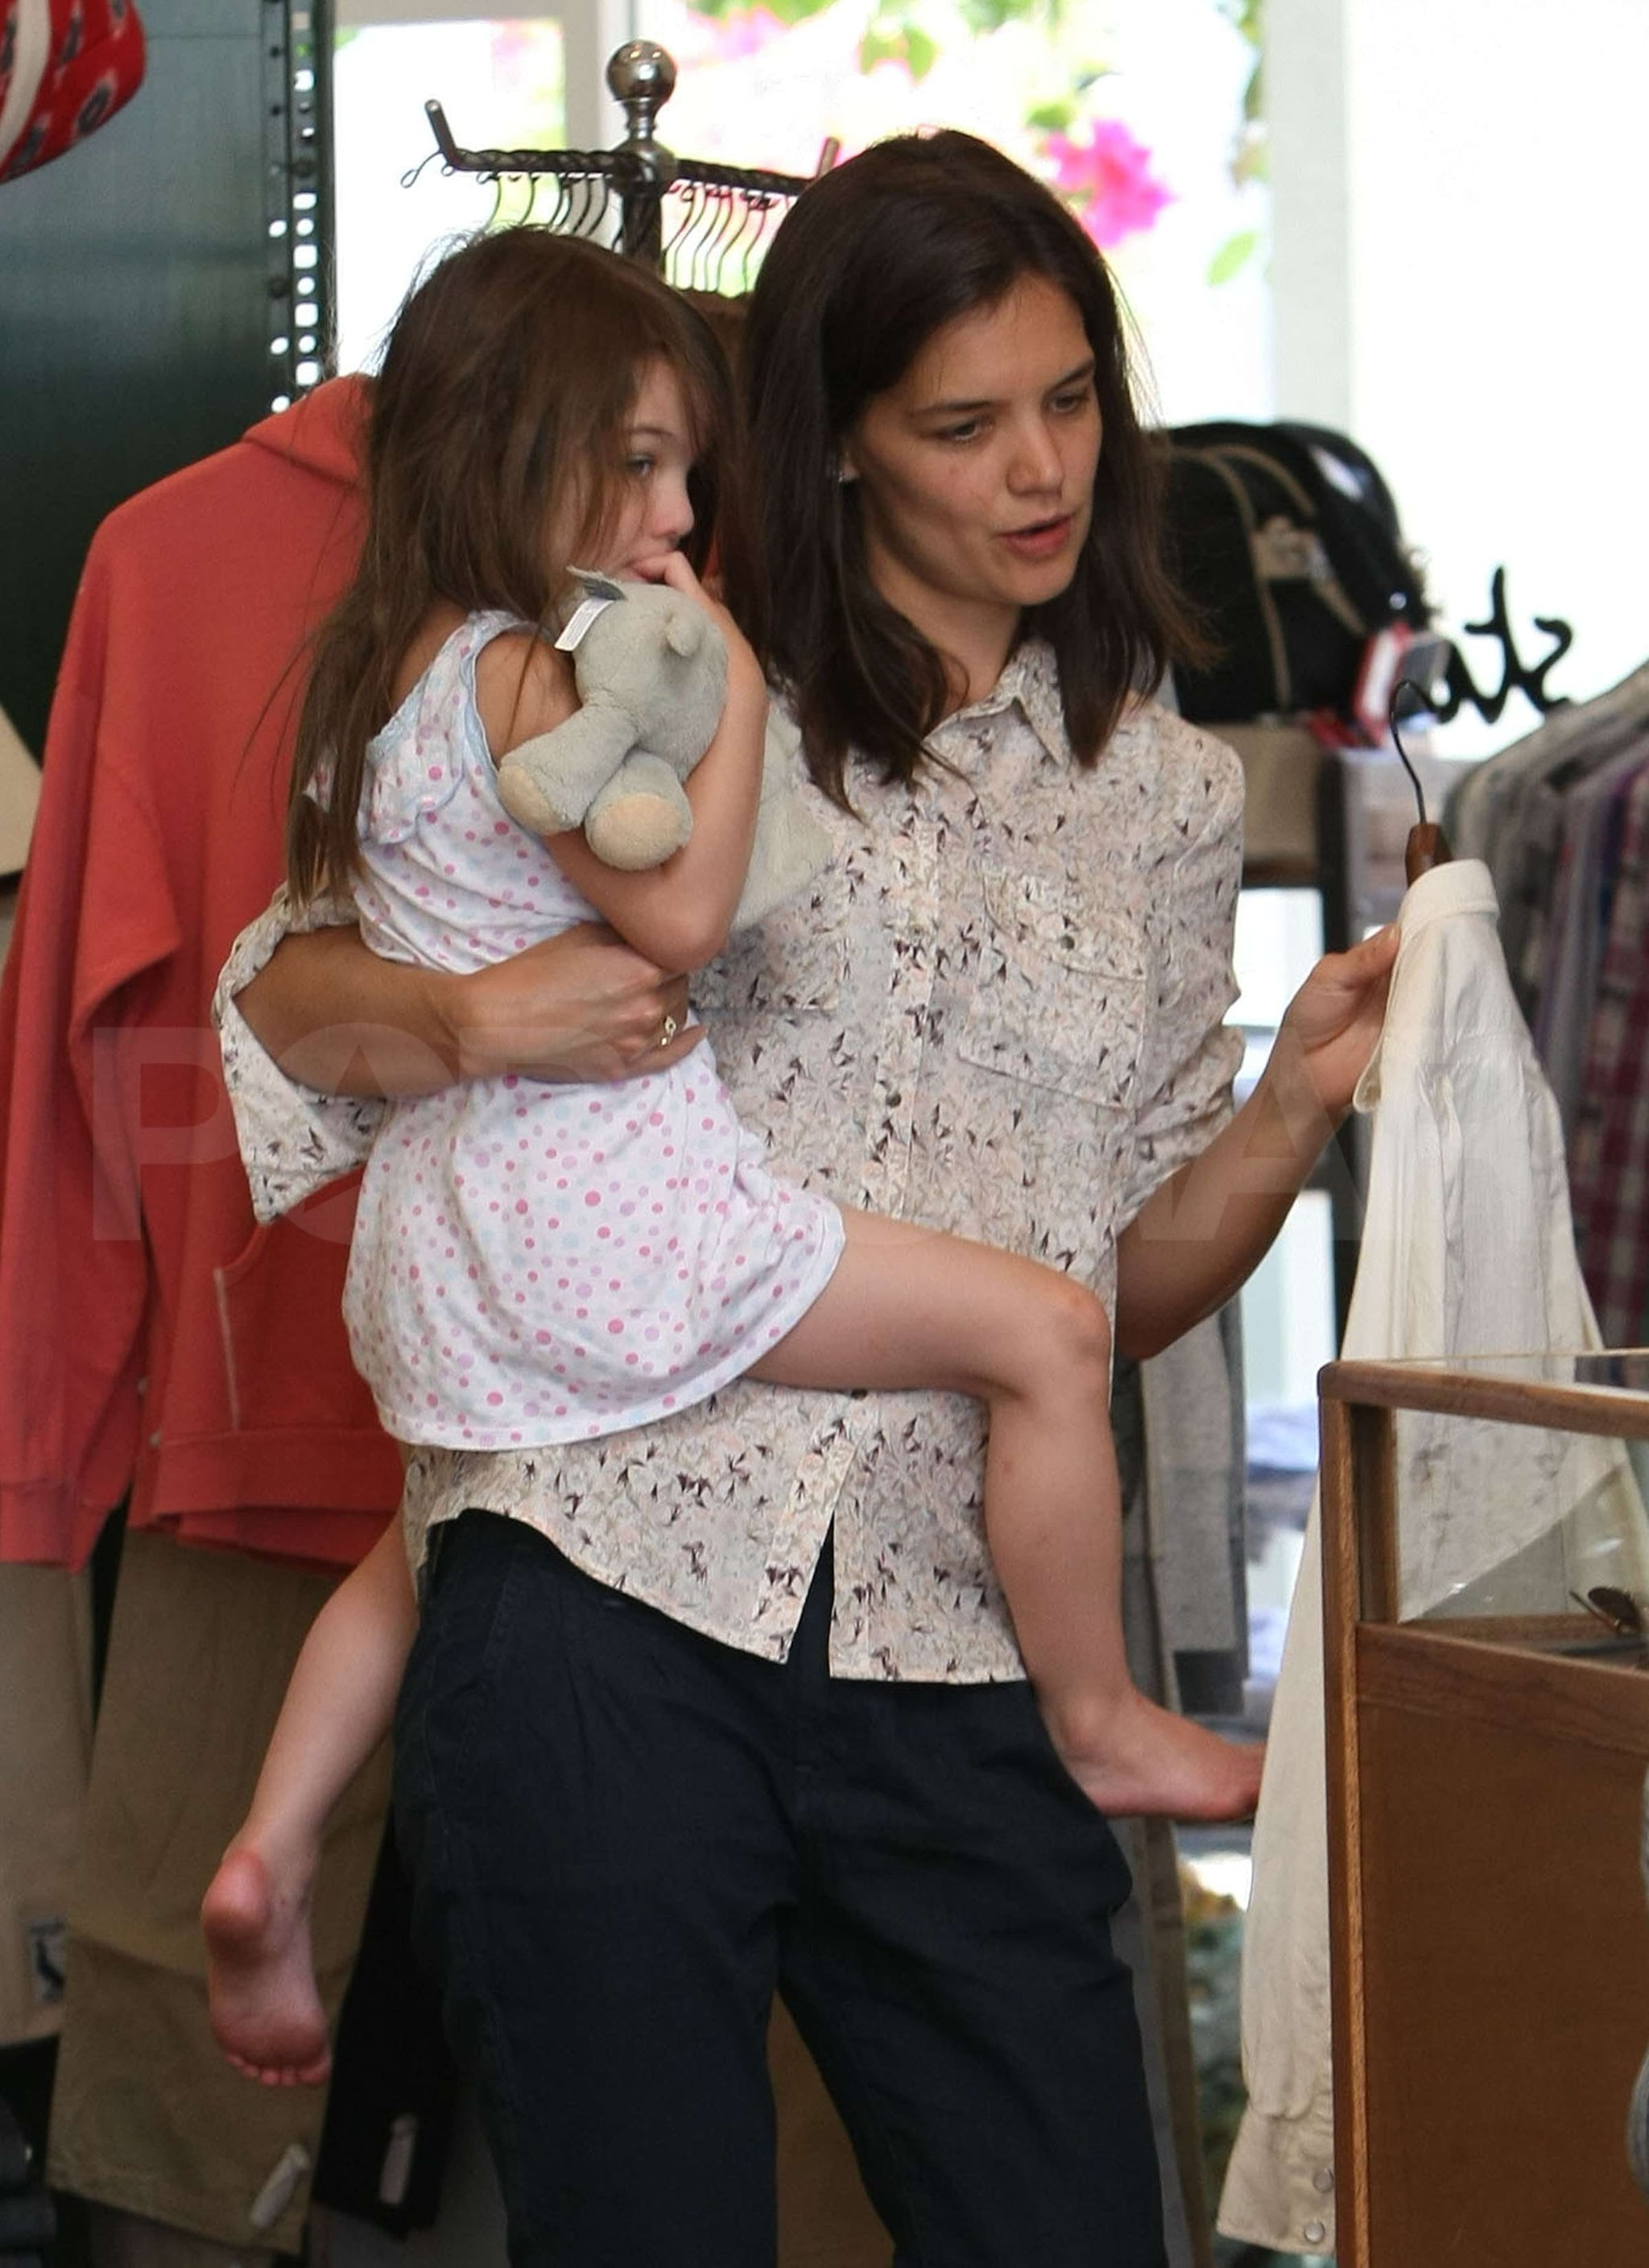 Pictures Of Barefoot Suri Cruise And Katie Holmes Shopping